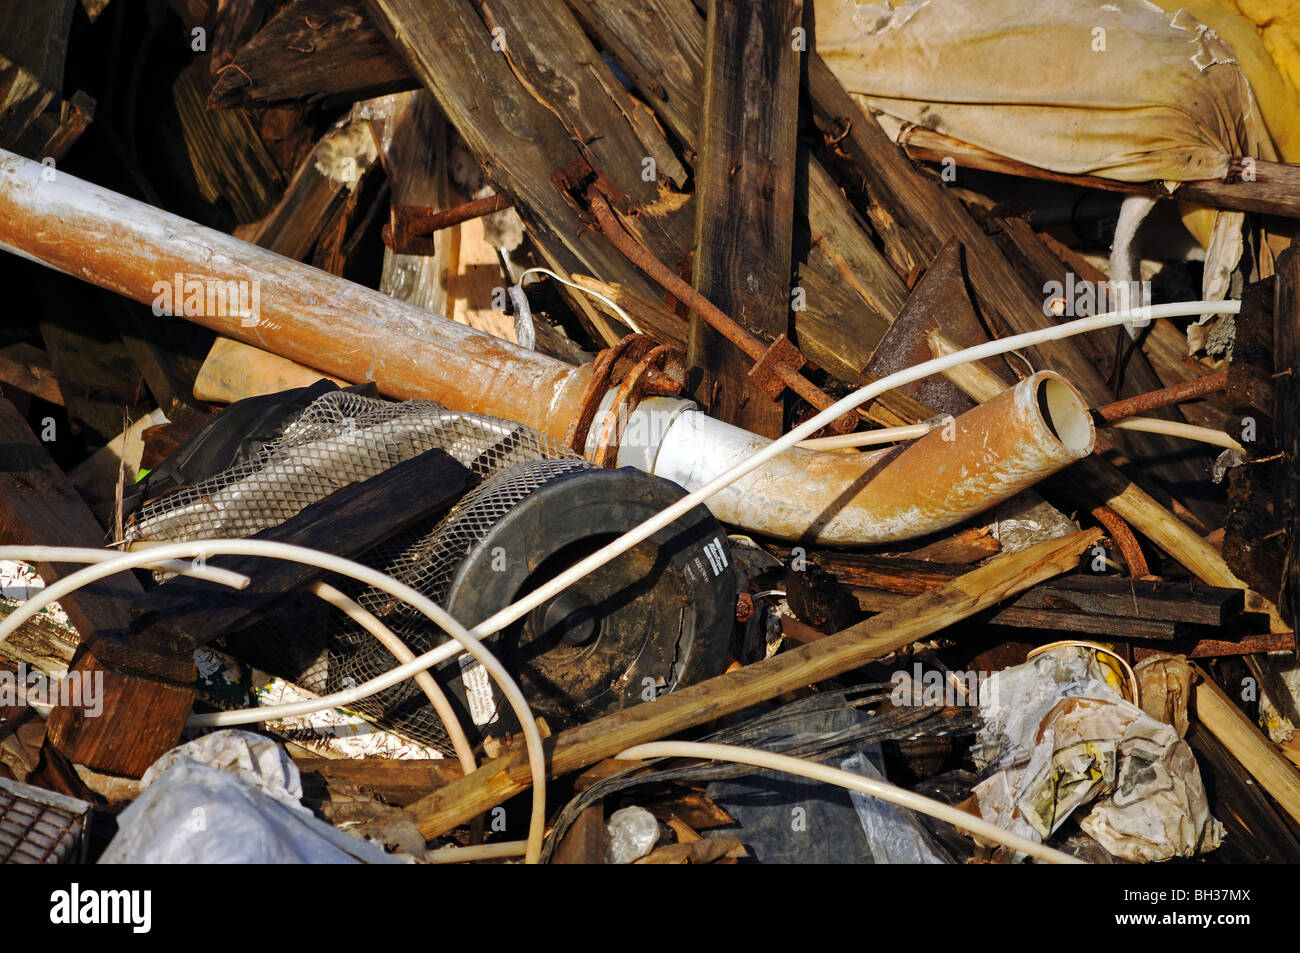 rubbish left by fly tipping - Stock Image